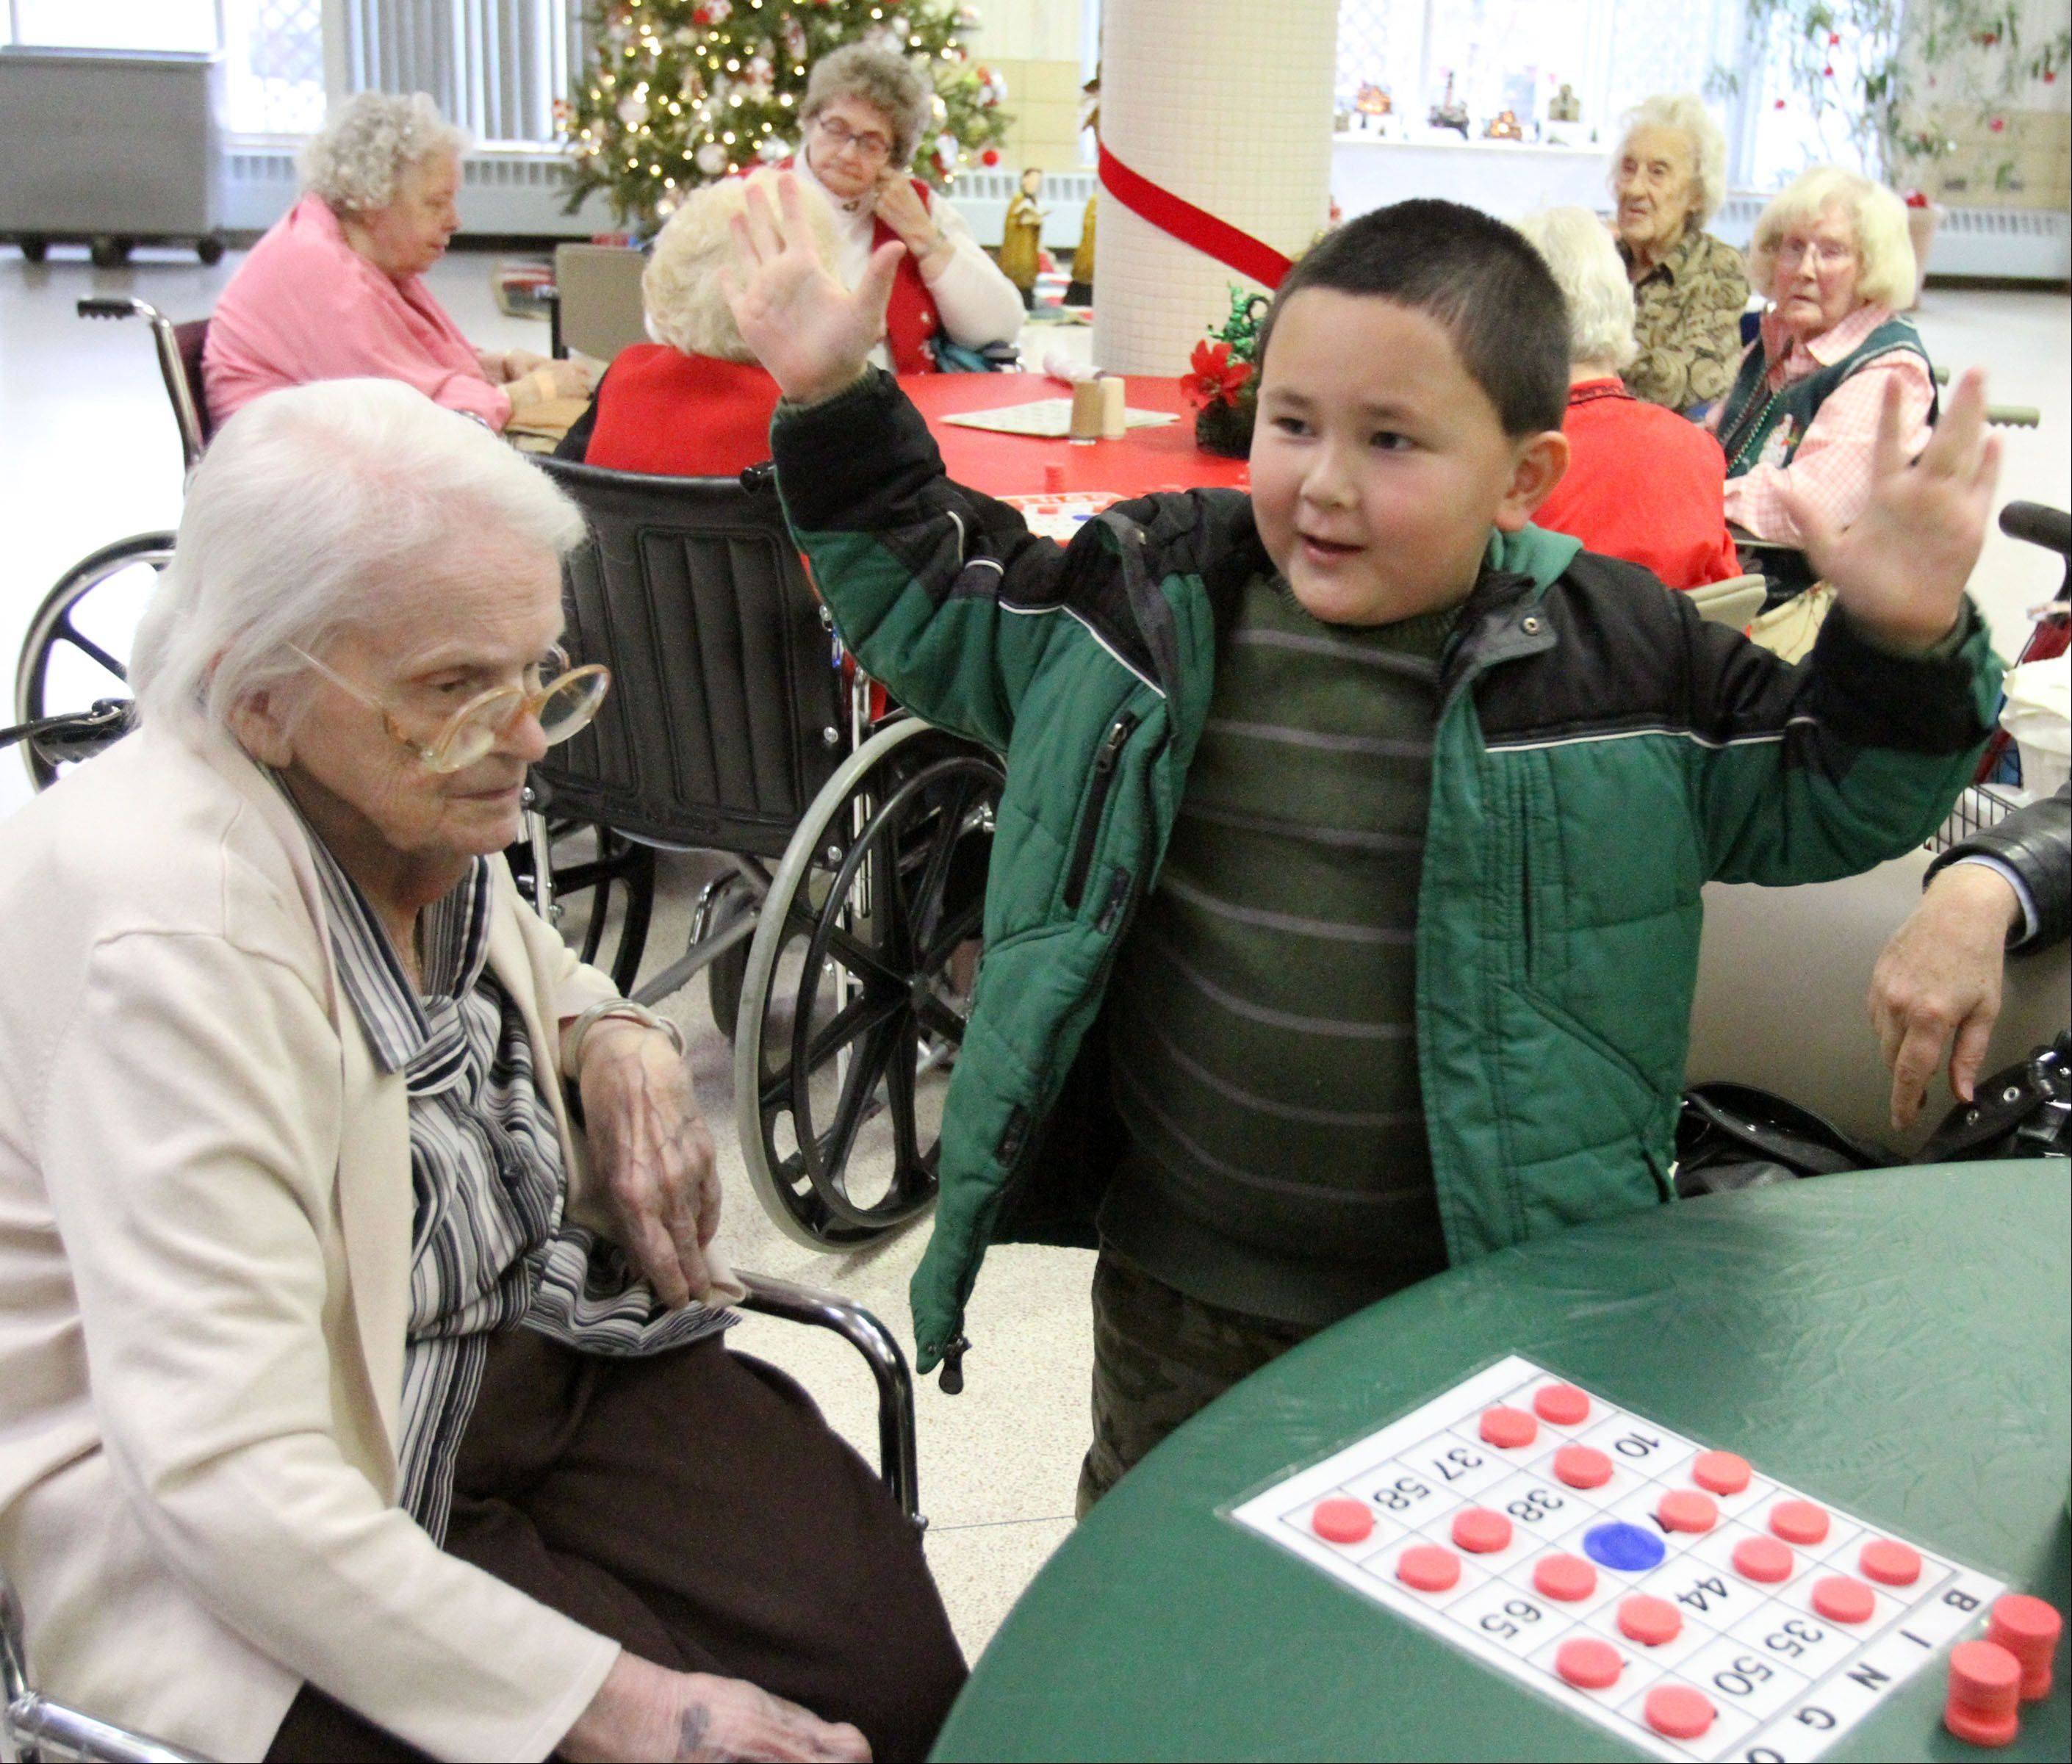 Bin Healy, 5, of Mundelein, celebrates as his grandmother Ann Healy wins a bingo game at the Lake County owned Winchester House nursing home on Christmas Day in Libertyville.